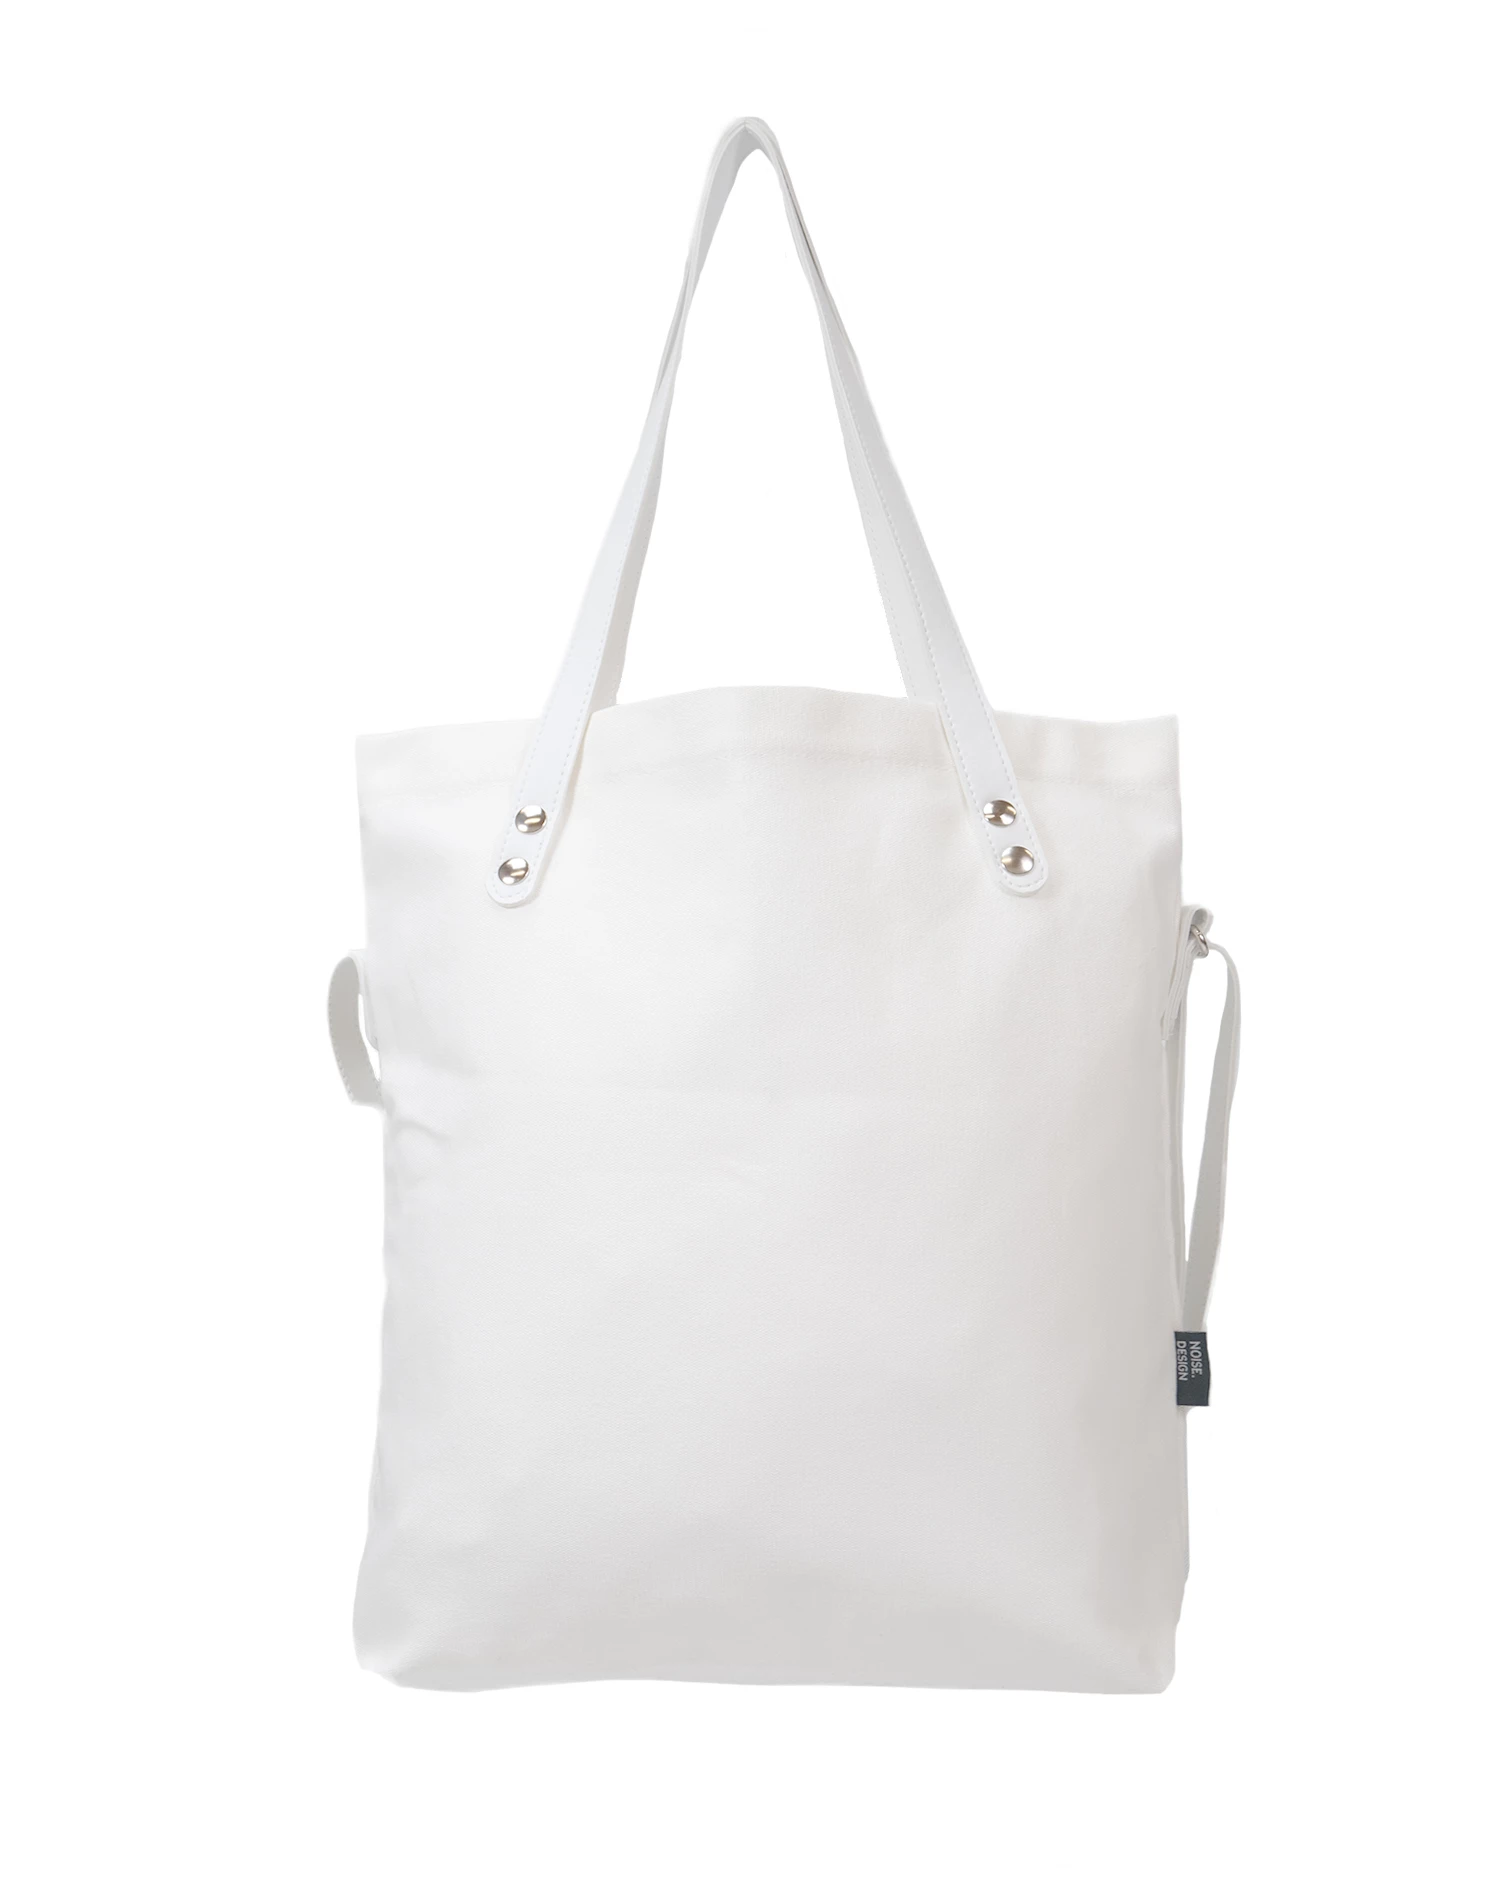 Handmade White Signature Tote Bag.白色手提袋